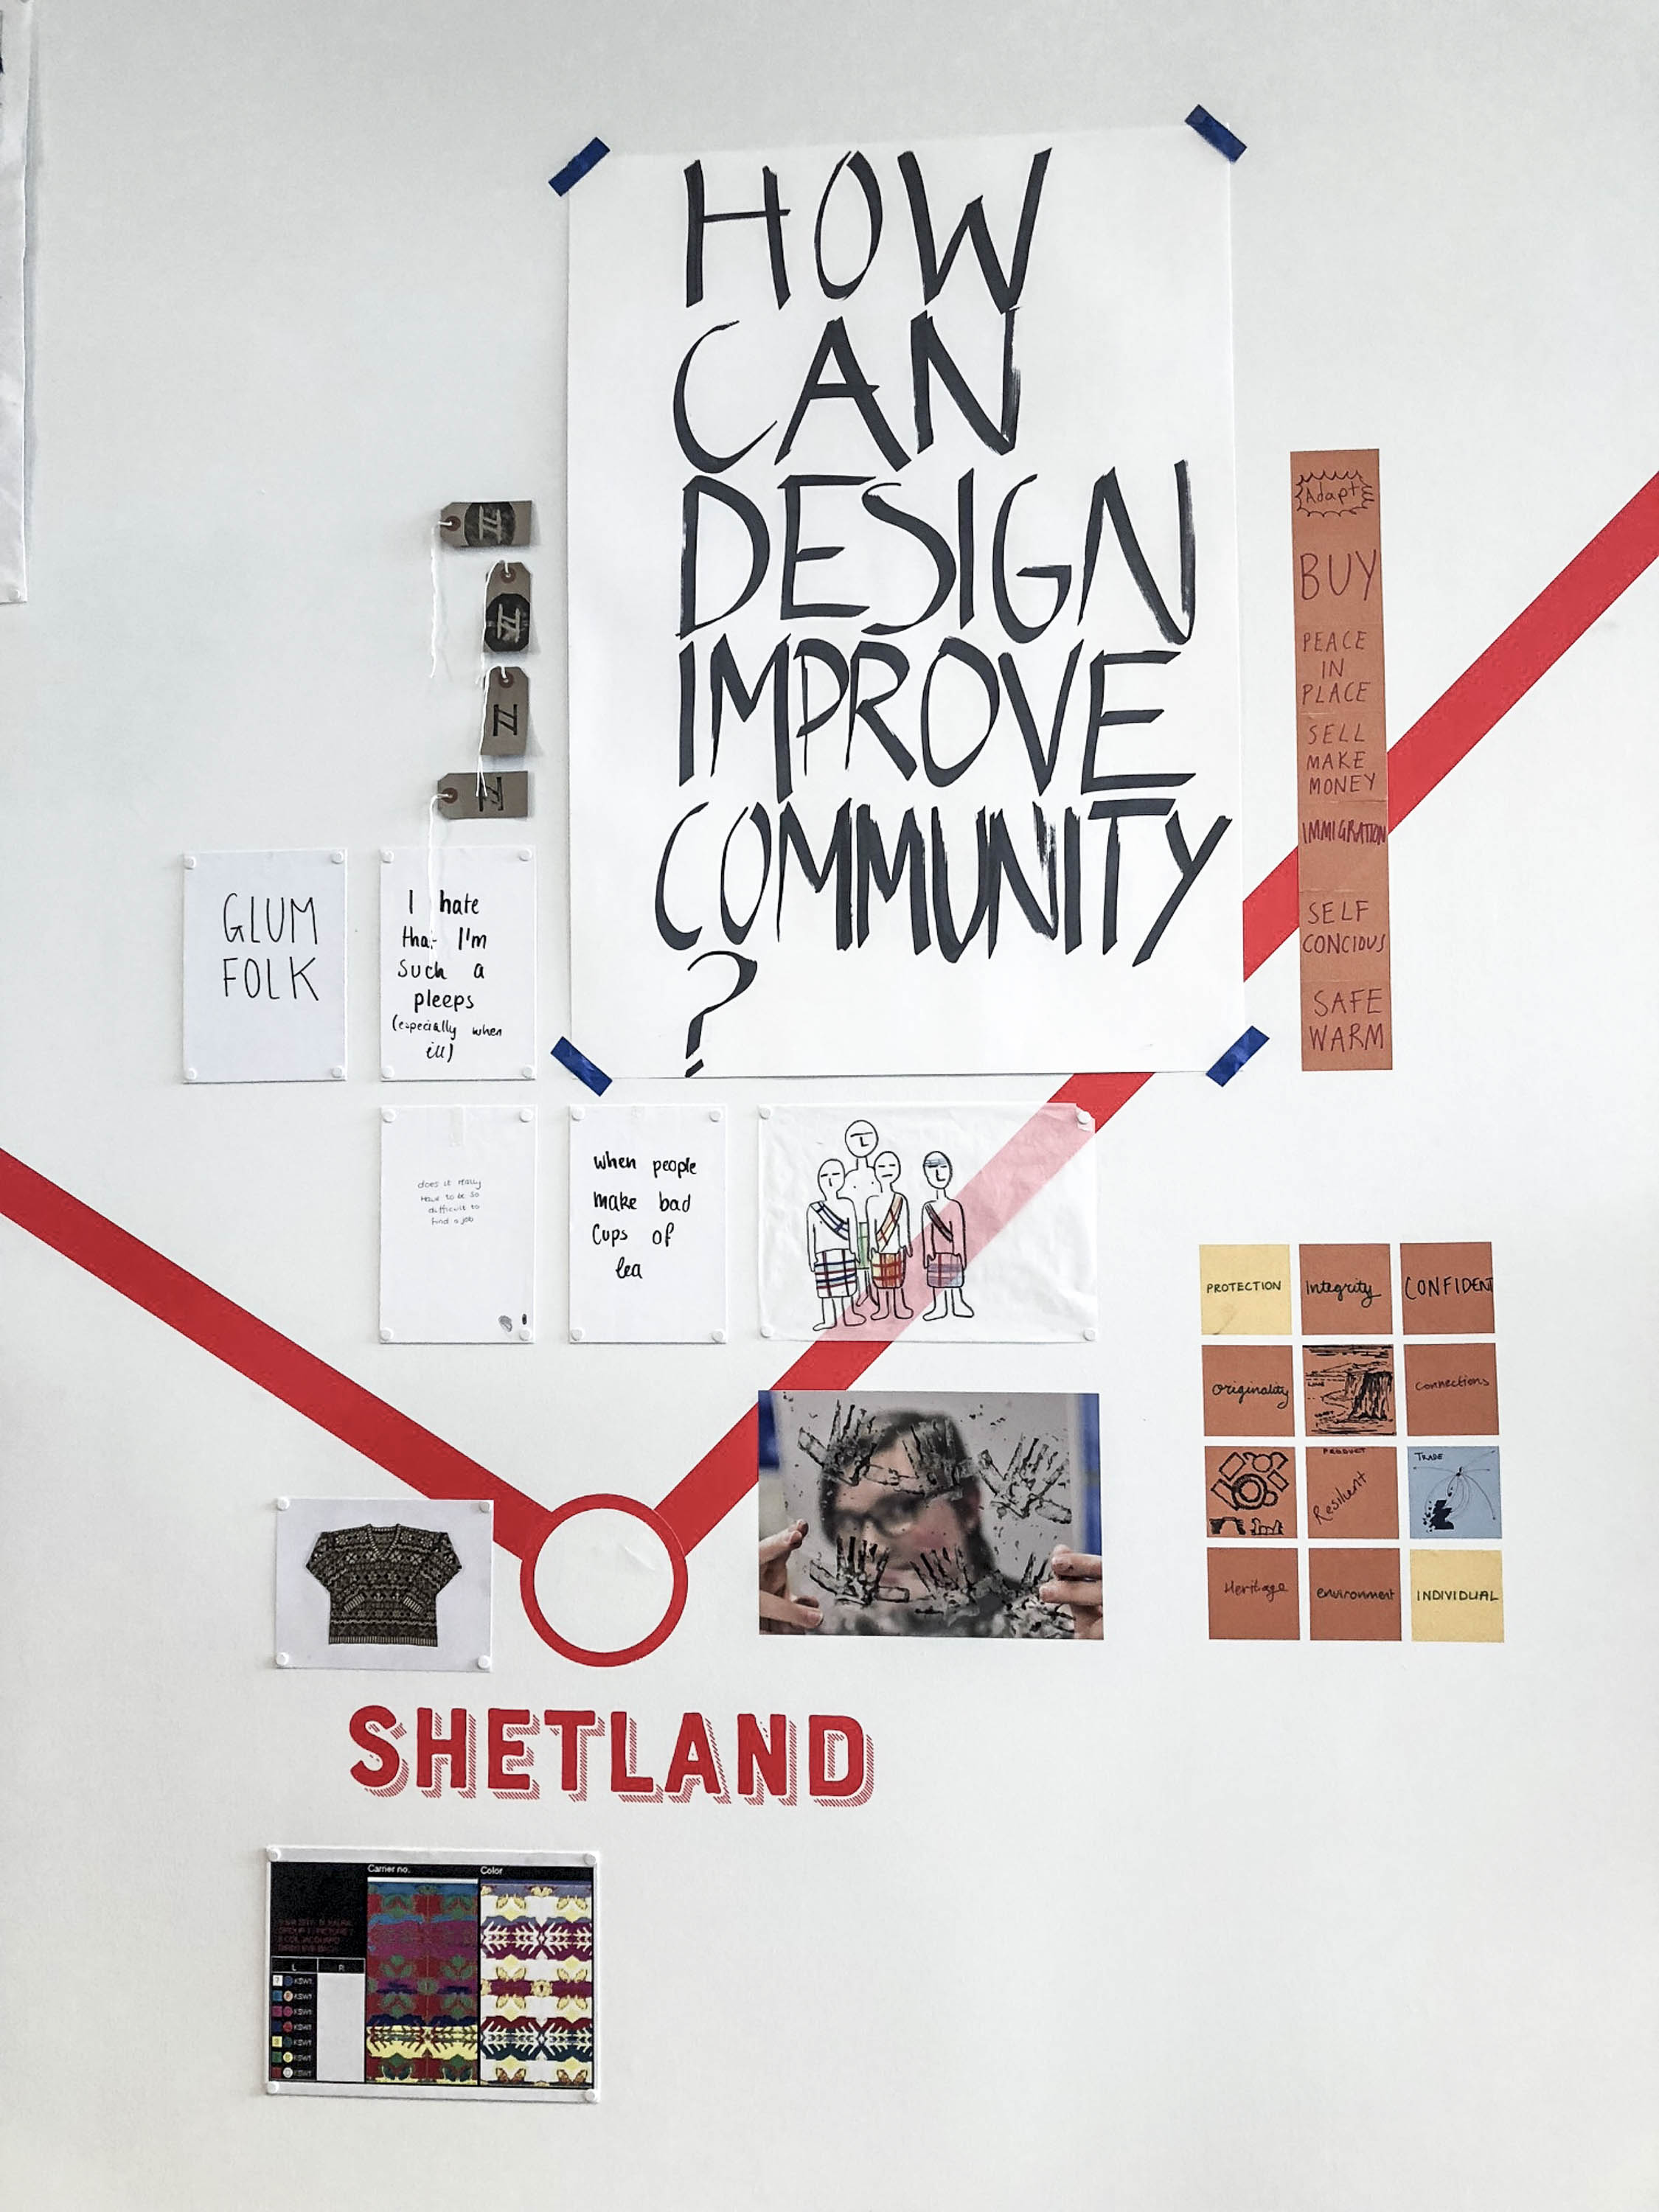 How can design improve community - shetland workshop materials on show at V&A dundee